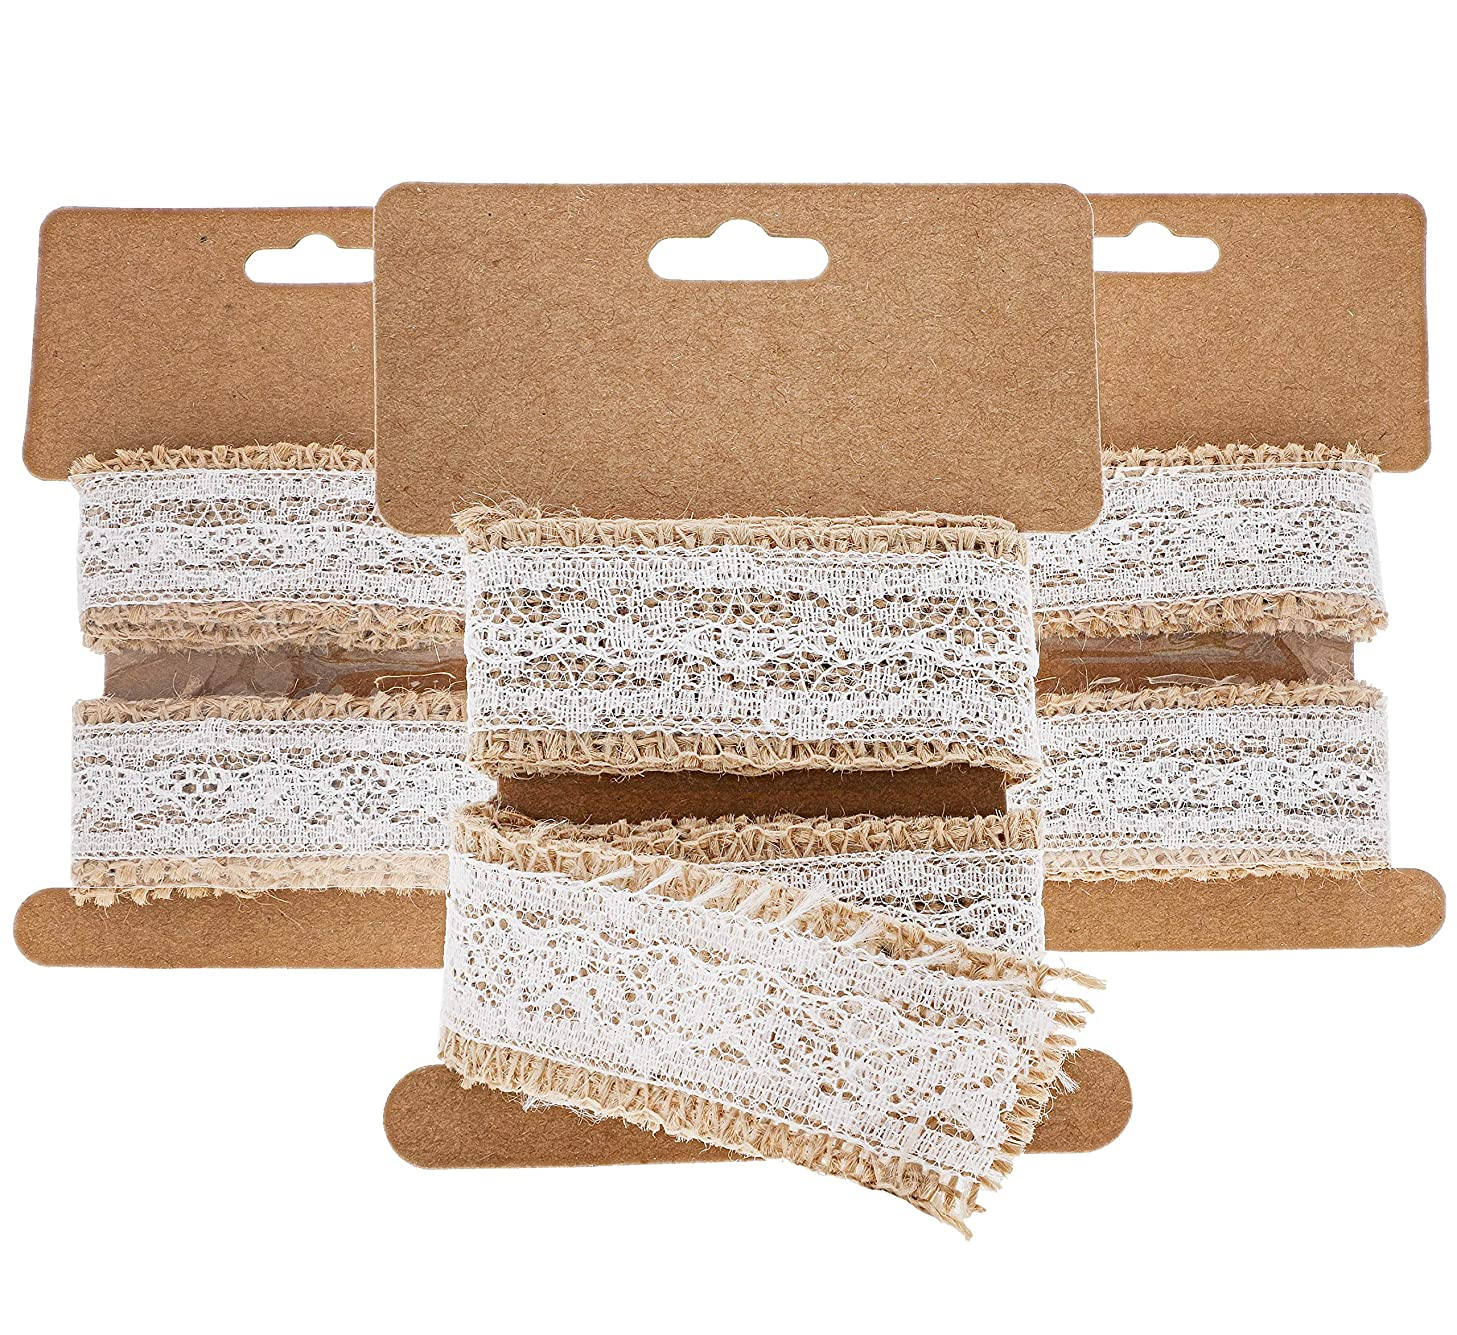 Genie Crafts 12 Rolls Natural Burlap Lace Fabric 1 Inch Wide Ribbon for DIY Crafts, 1 Yard Long